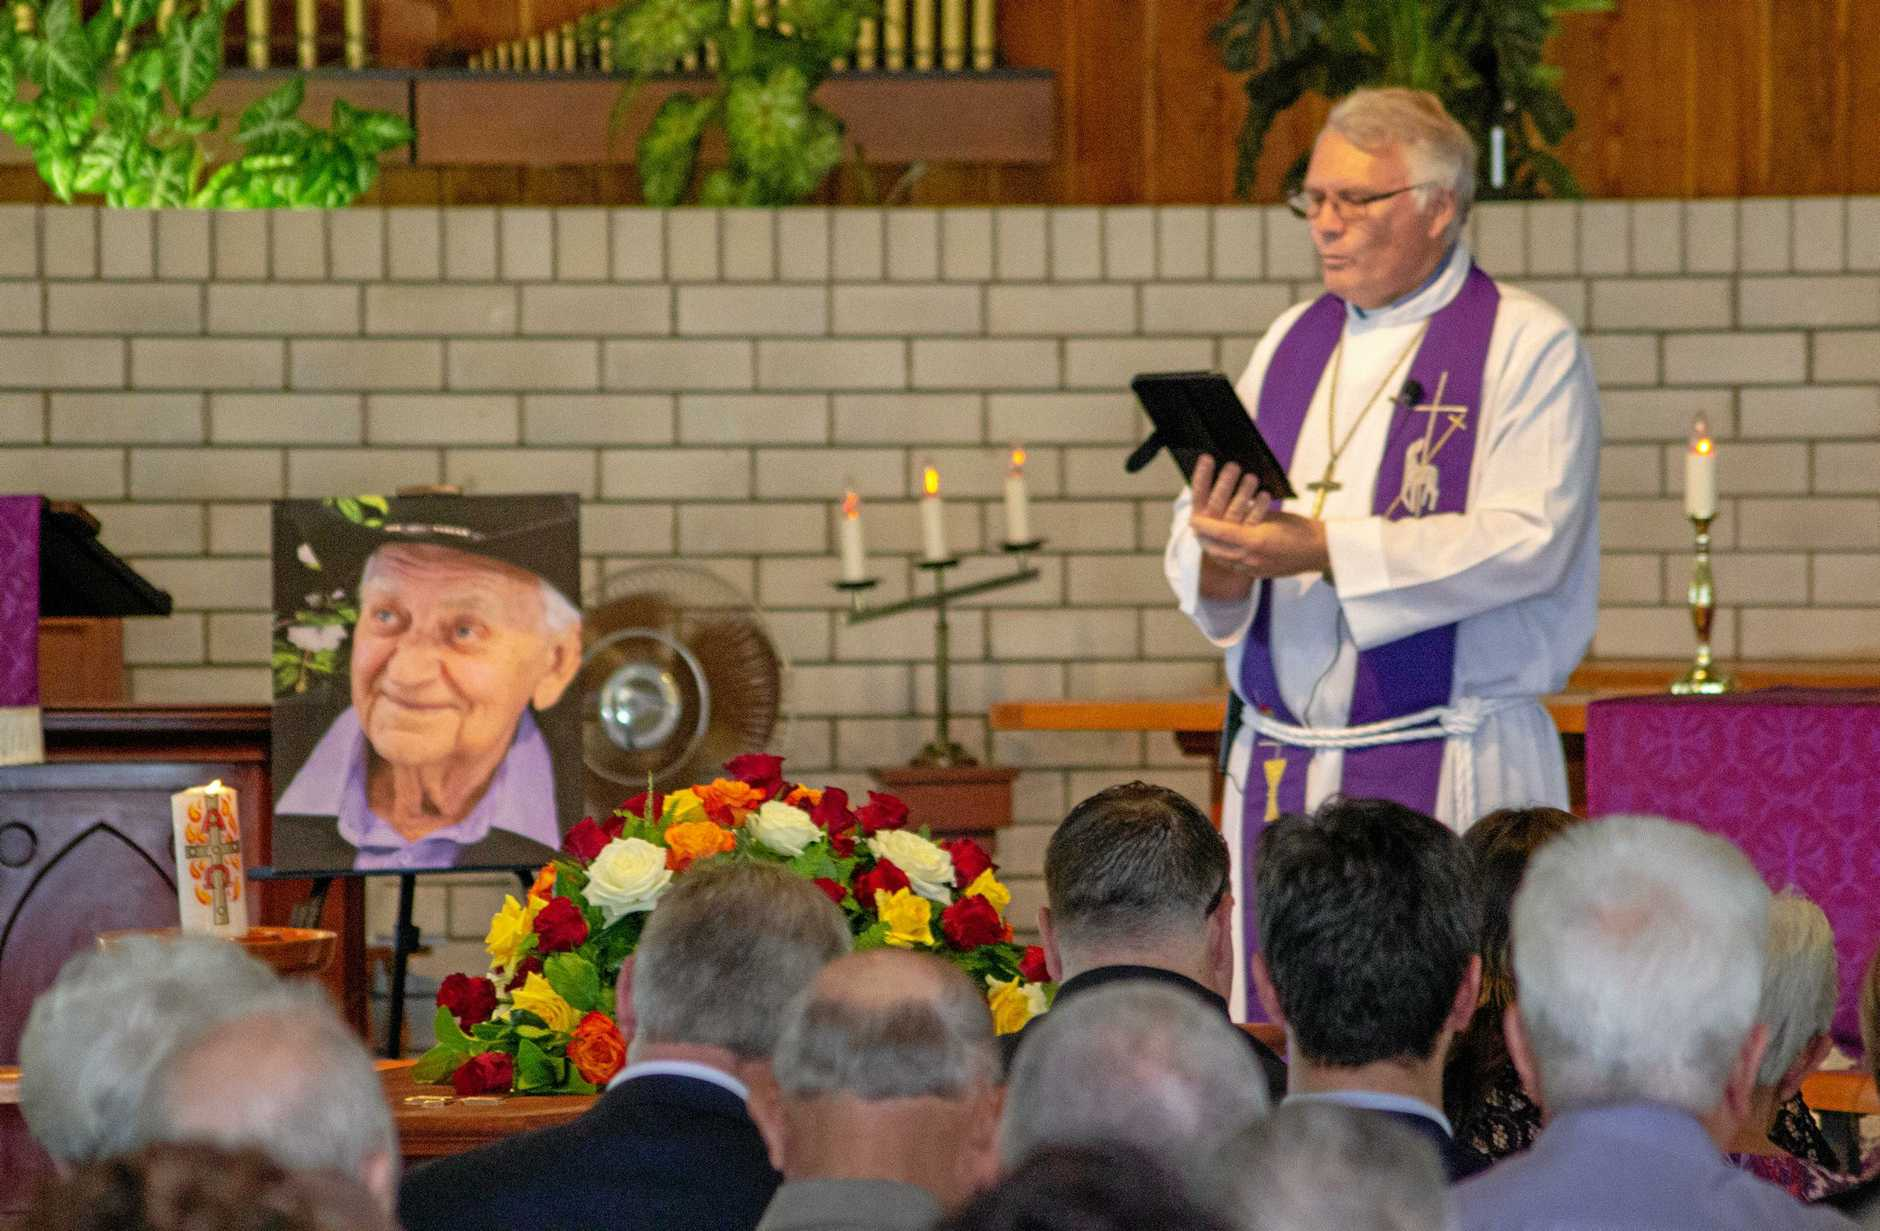 Pastor Noel Burton speaks at the funeral of Ray Orme Bachmann (March 23 1938 - December 10 2018), held in Laidley on December 18, 2018.